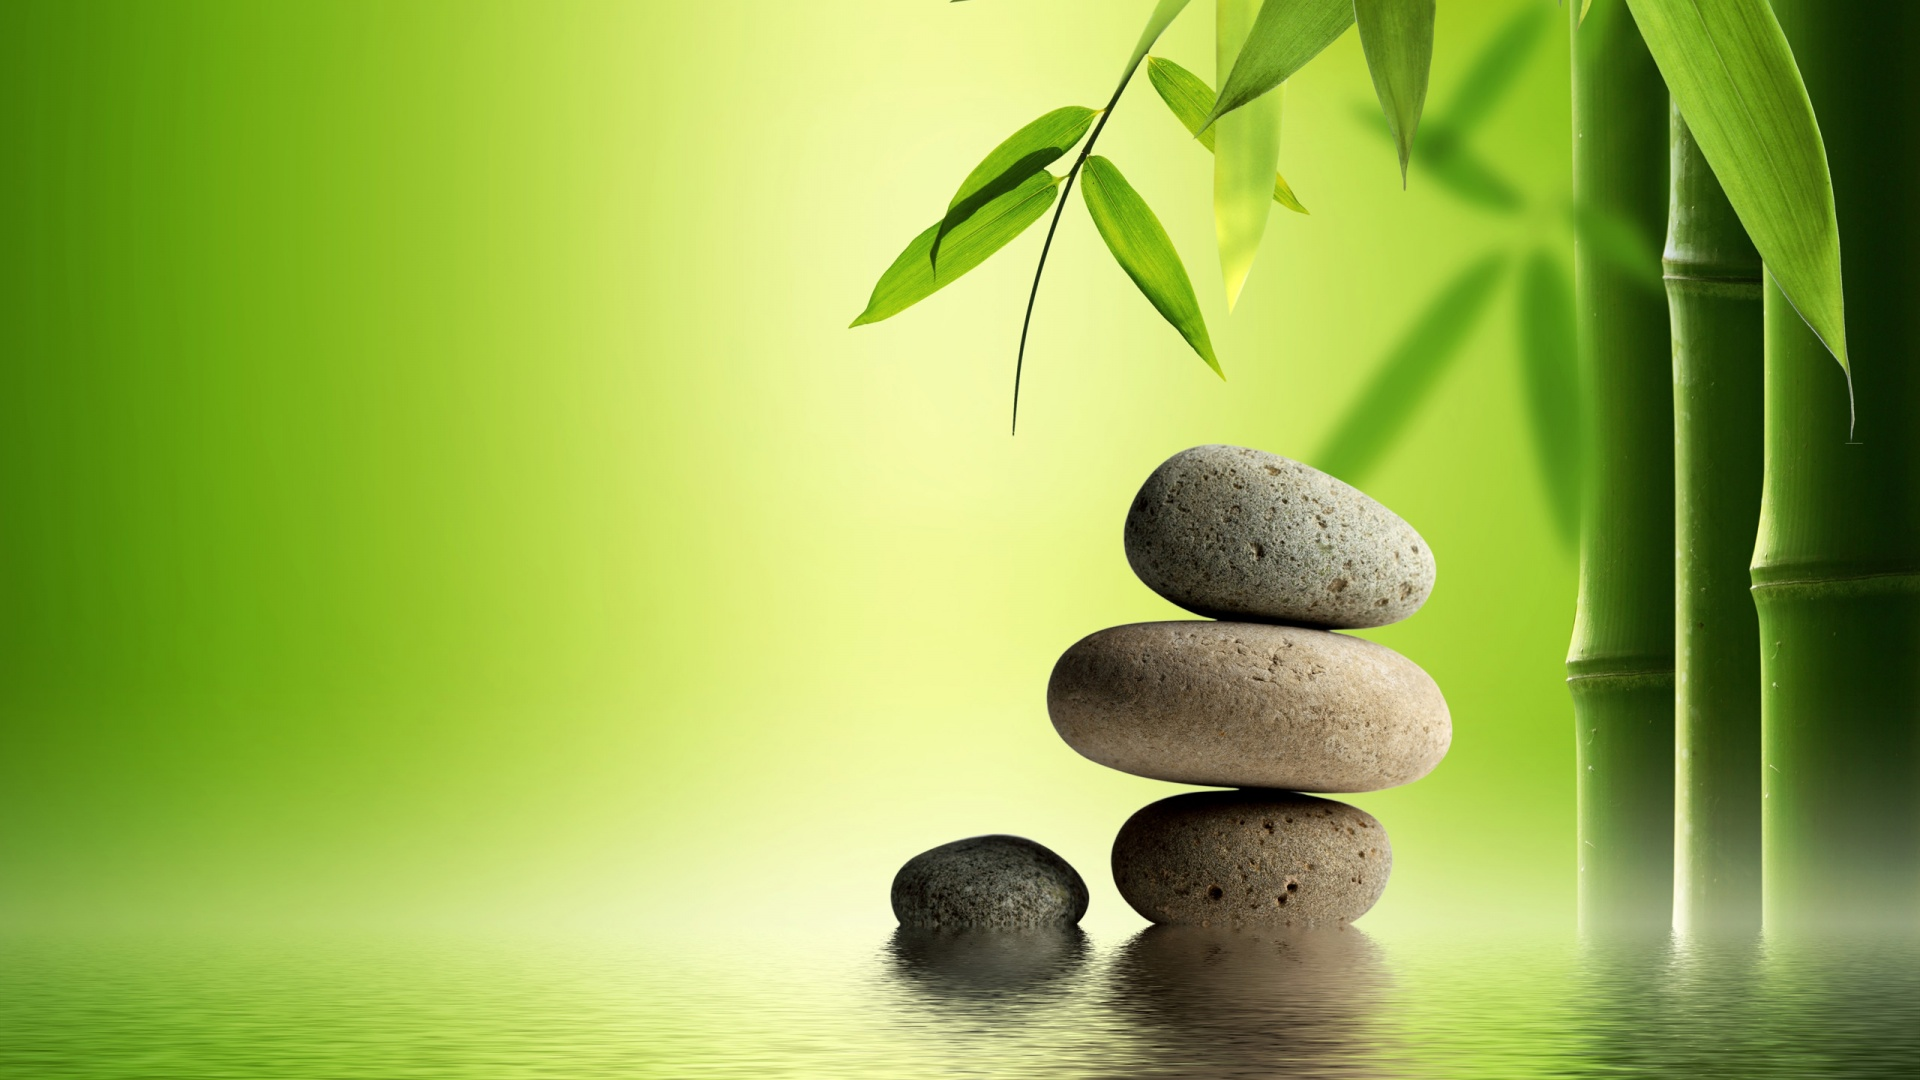 bamboo stone wallpaper wallpapersjpg 1920x1080